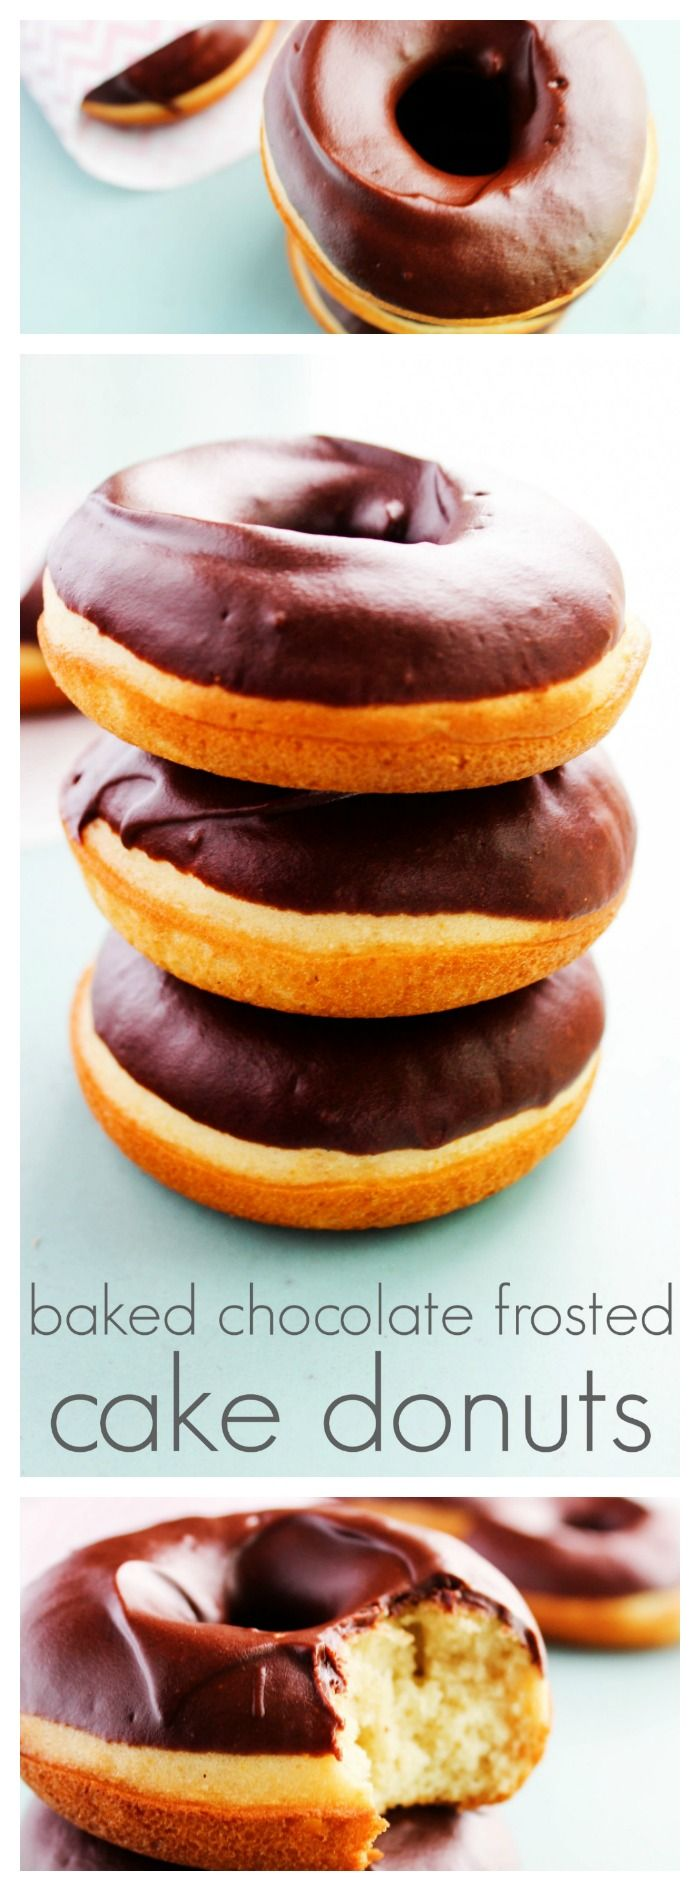 Baked Chocolate Frosted Cake Donuts LONG PIN